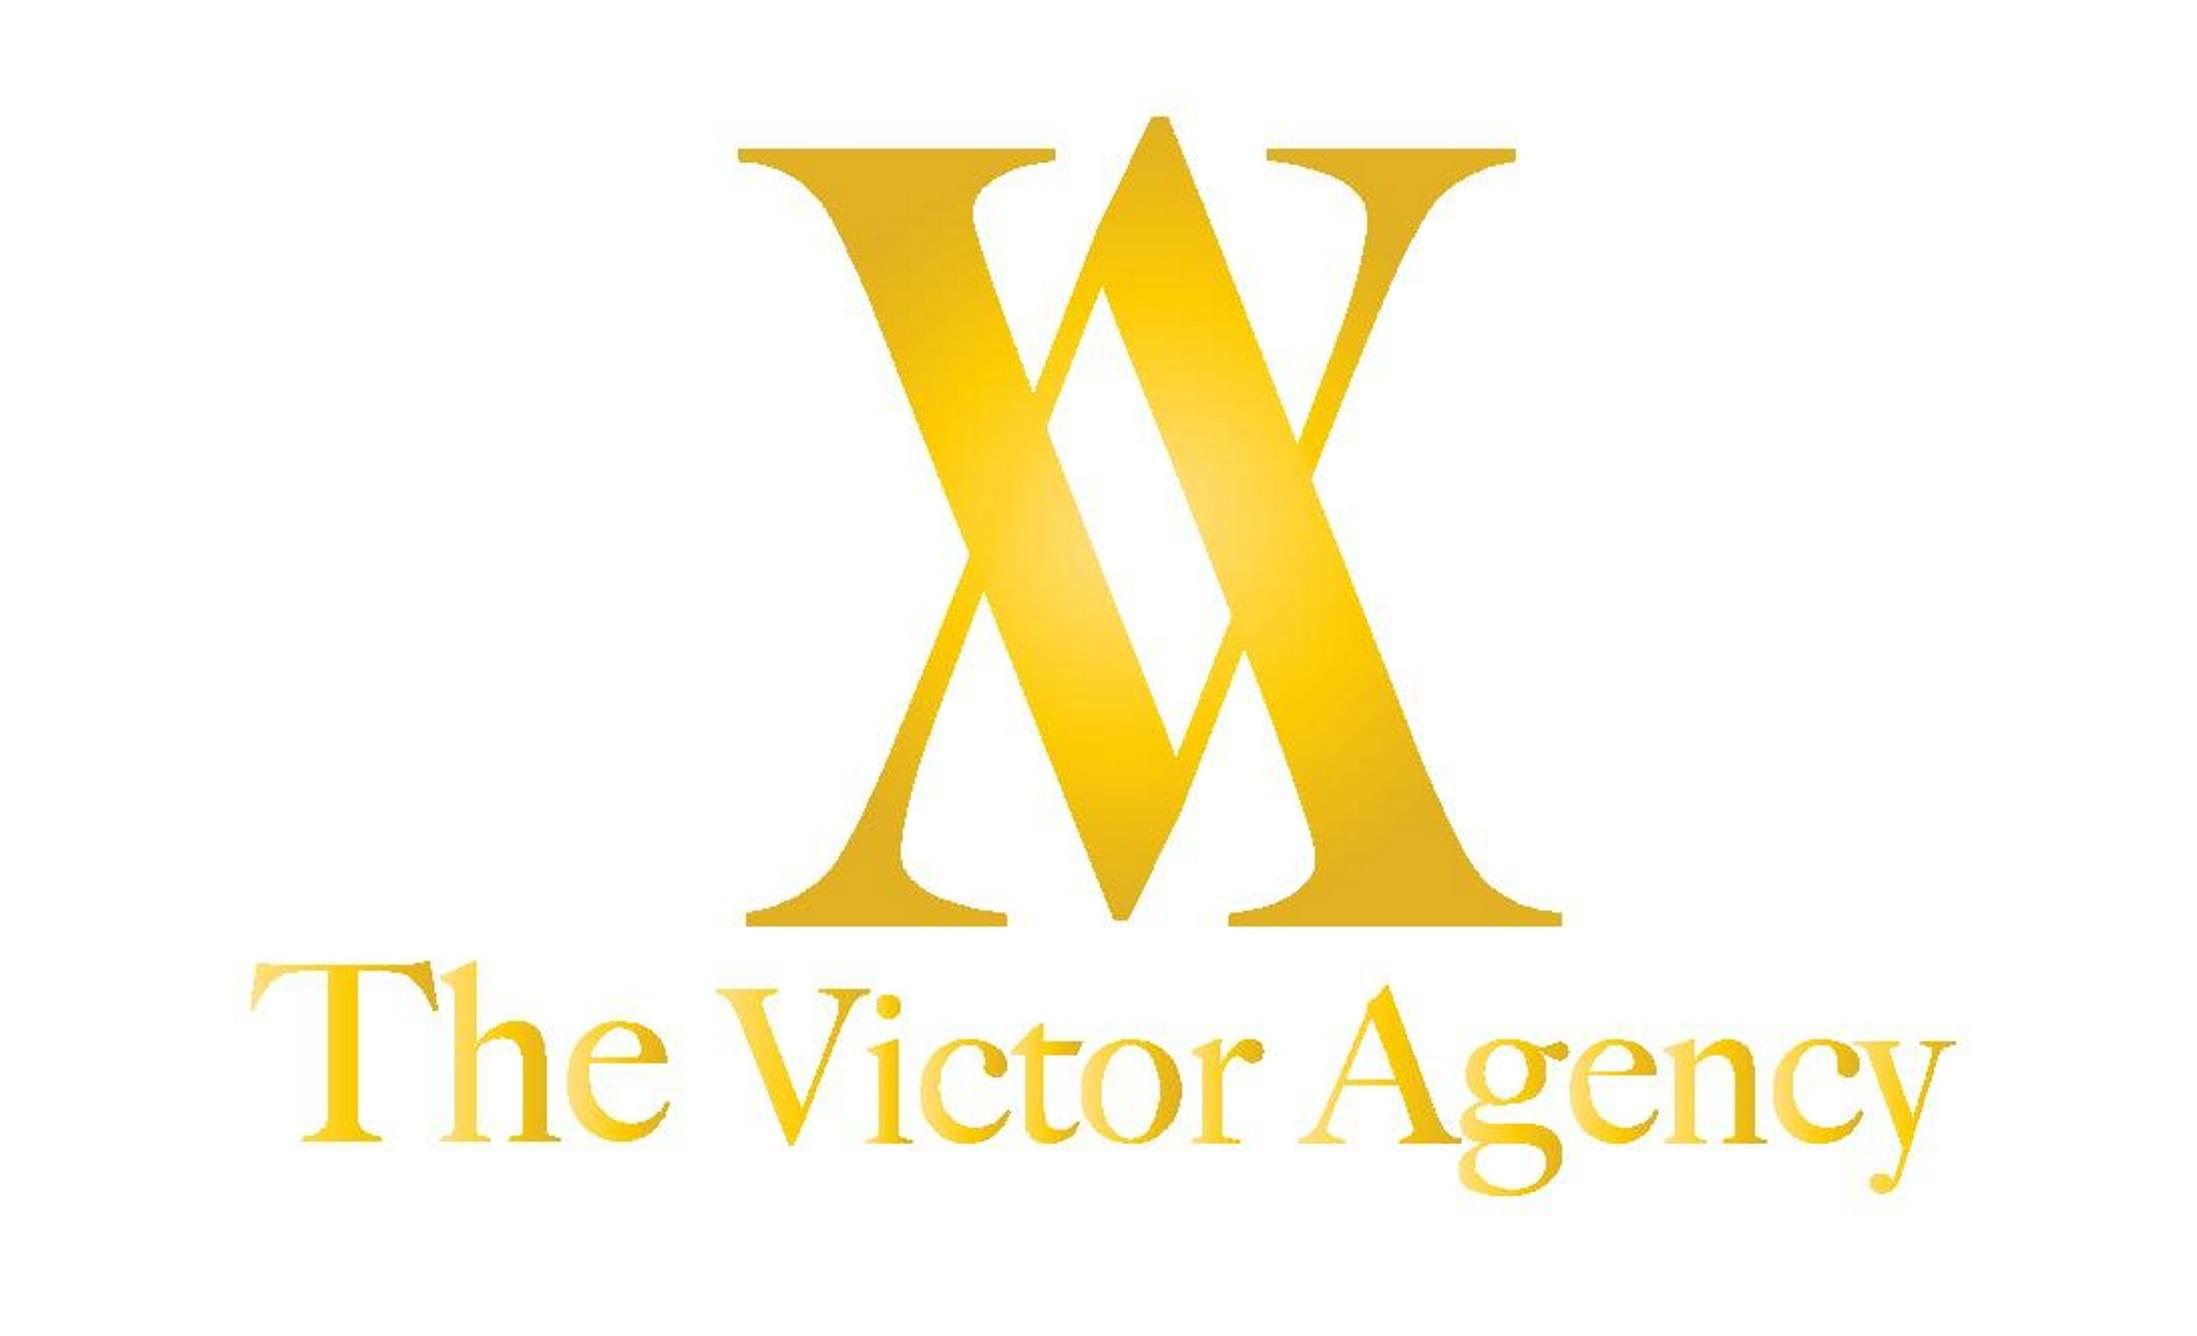 Remove the hassles of marketing and getting traffic for new business with The Victor Agency - Introducing the High-Intent Tracking System that provides pre-qualified buyers